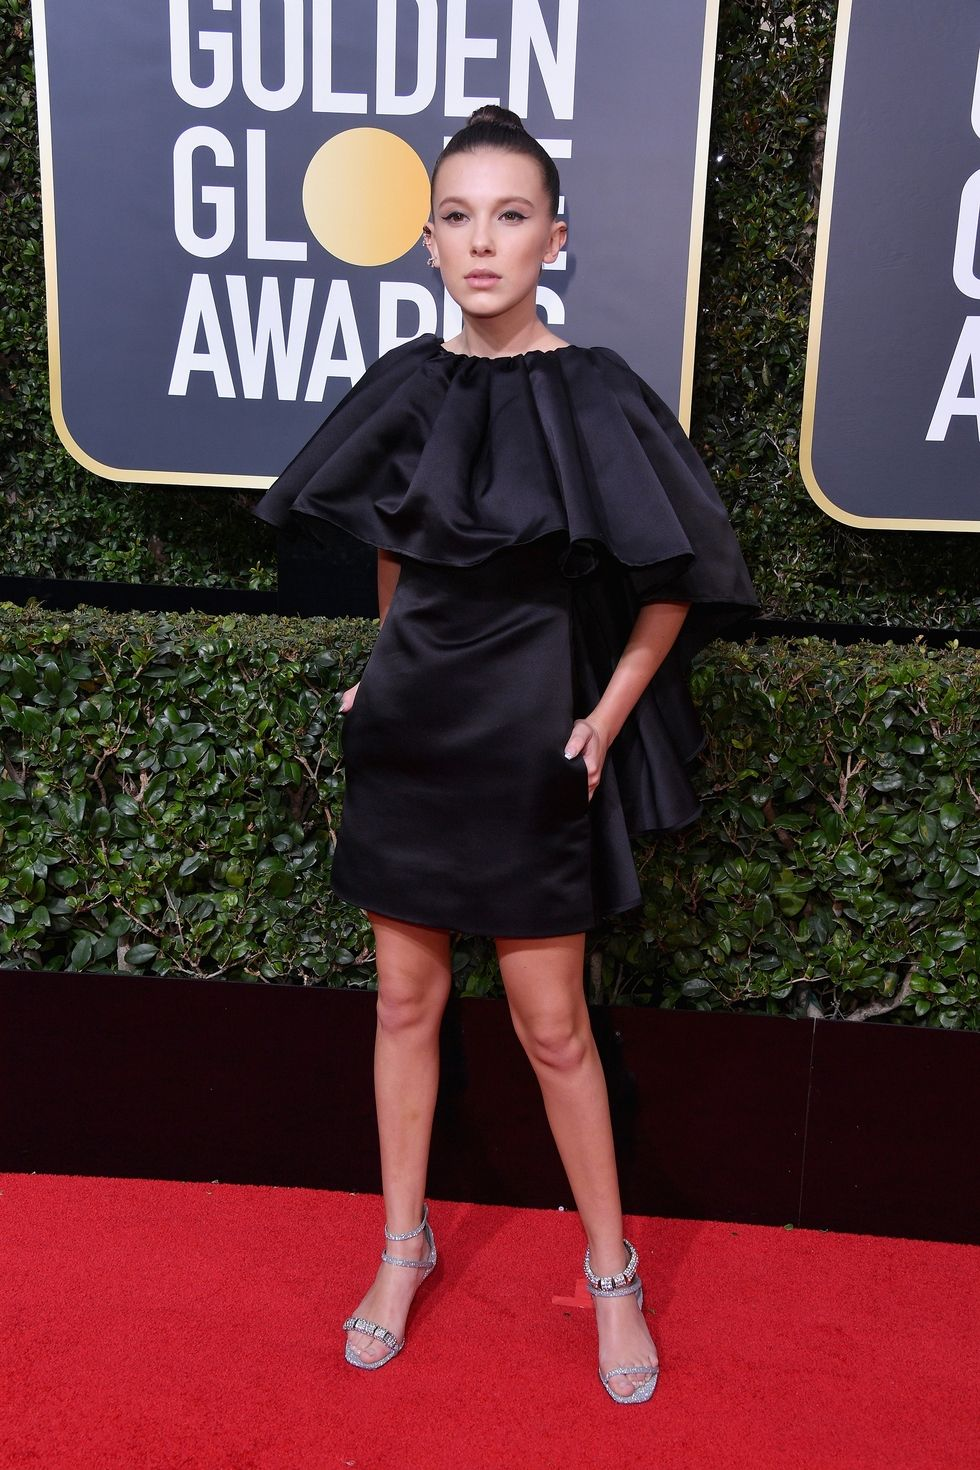 Golden globes 2018, best dressed golden globes, milly bobby brown golden globes